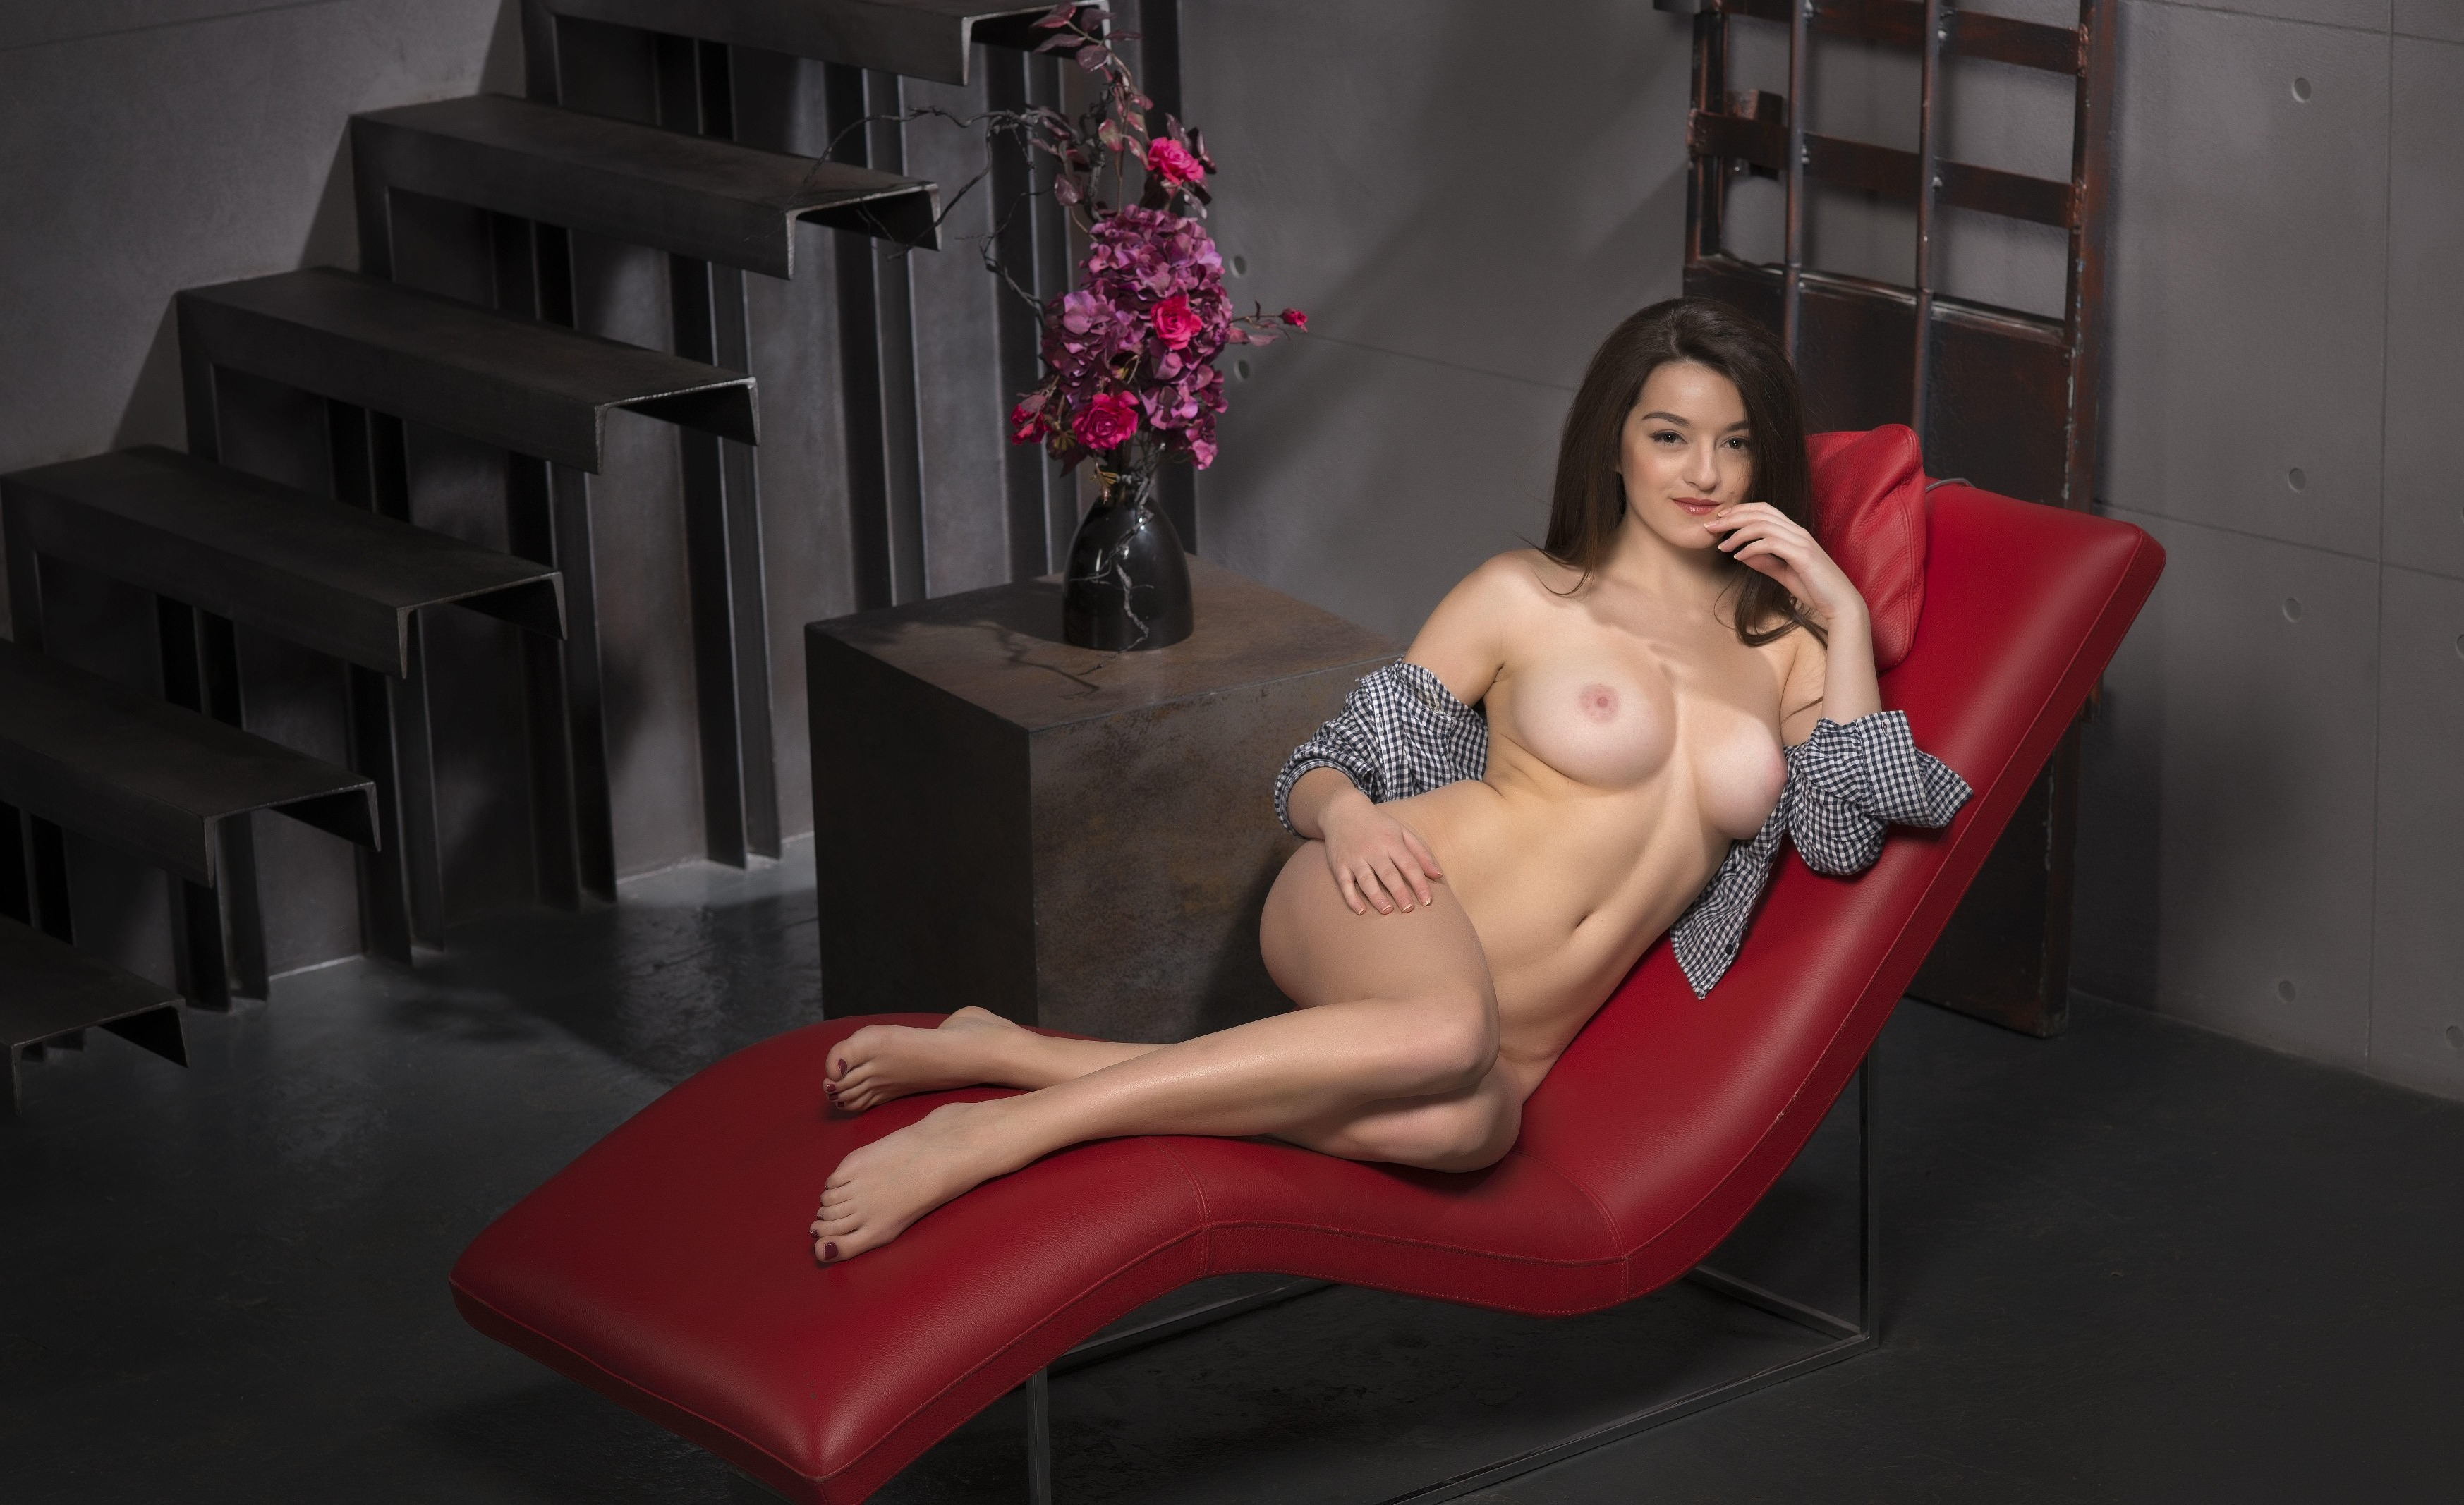 Leah gotti spreads in a lounge chair